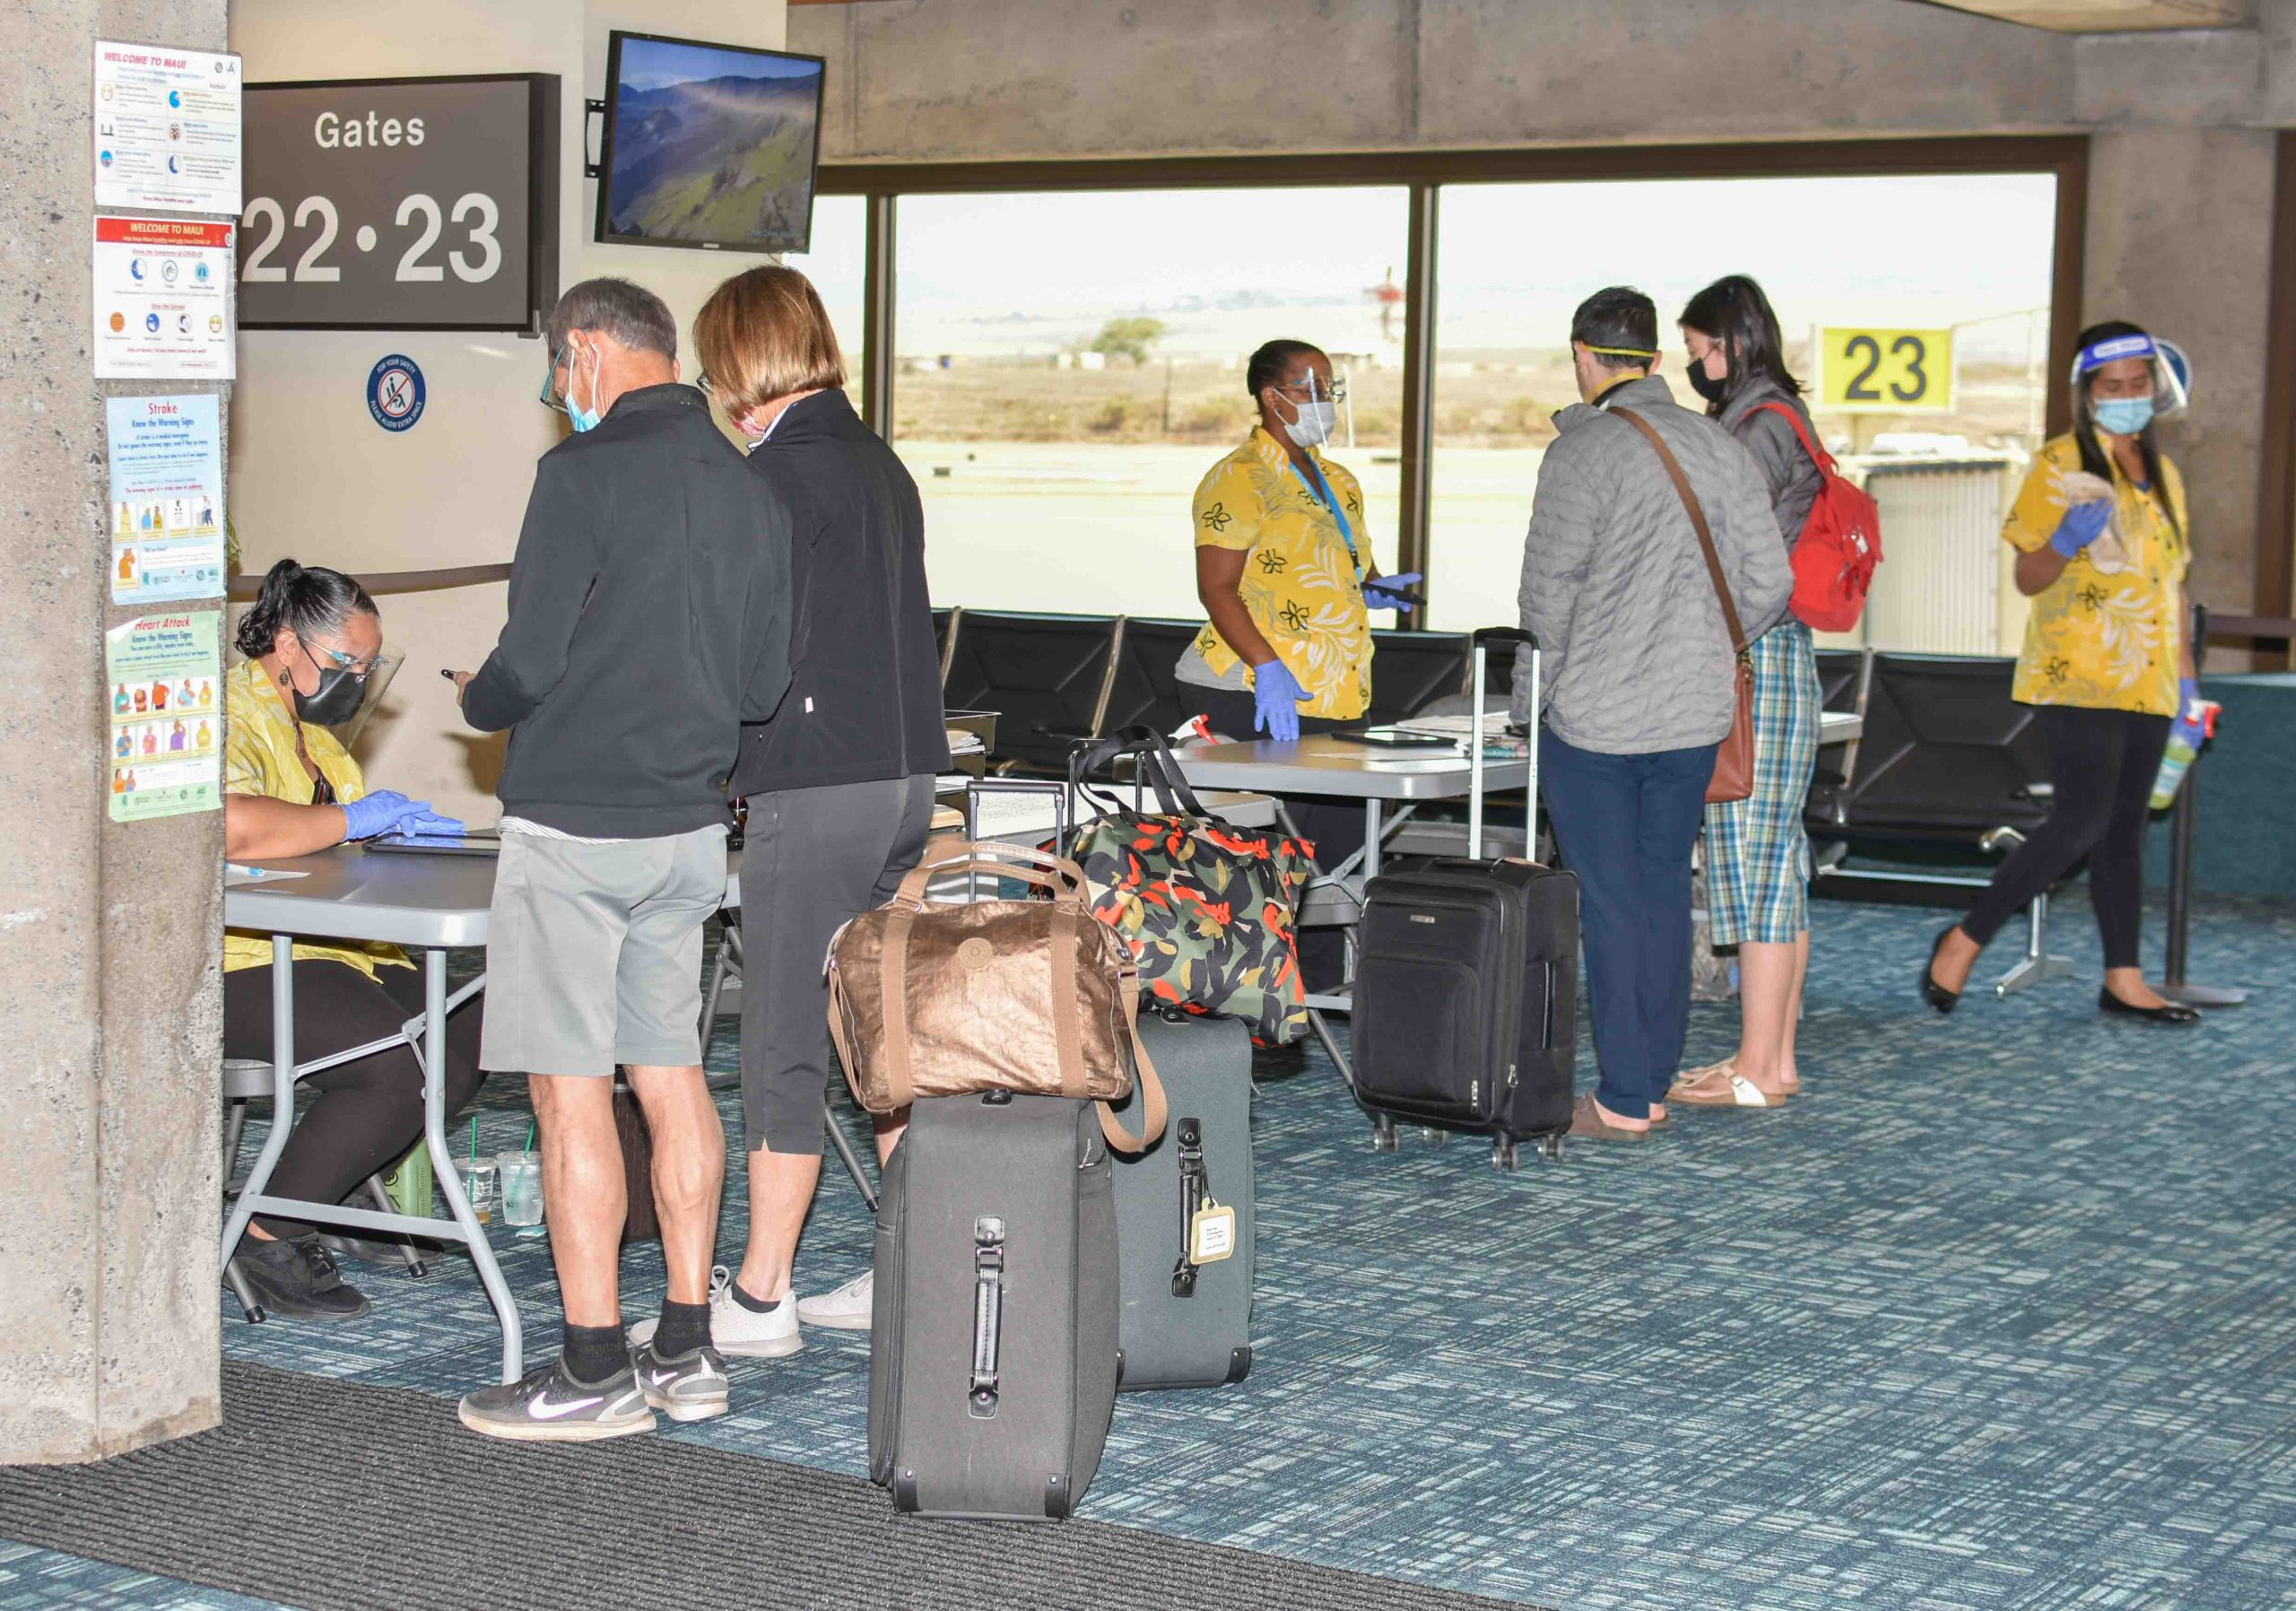 Passengers check in